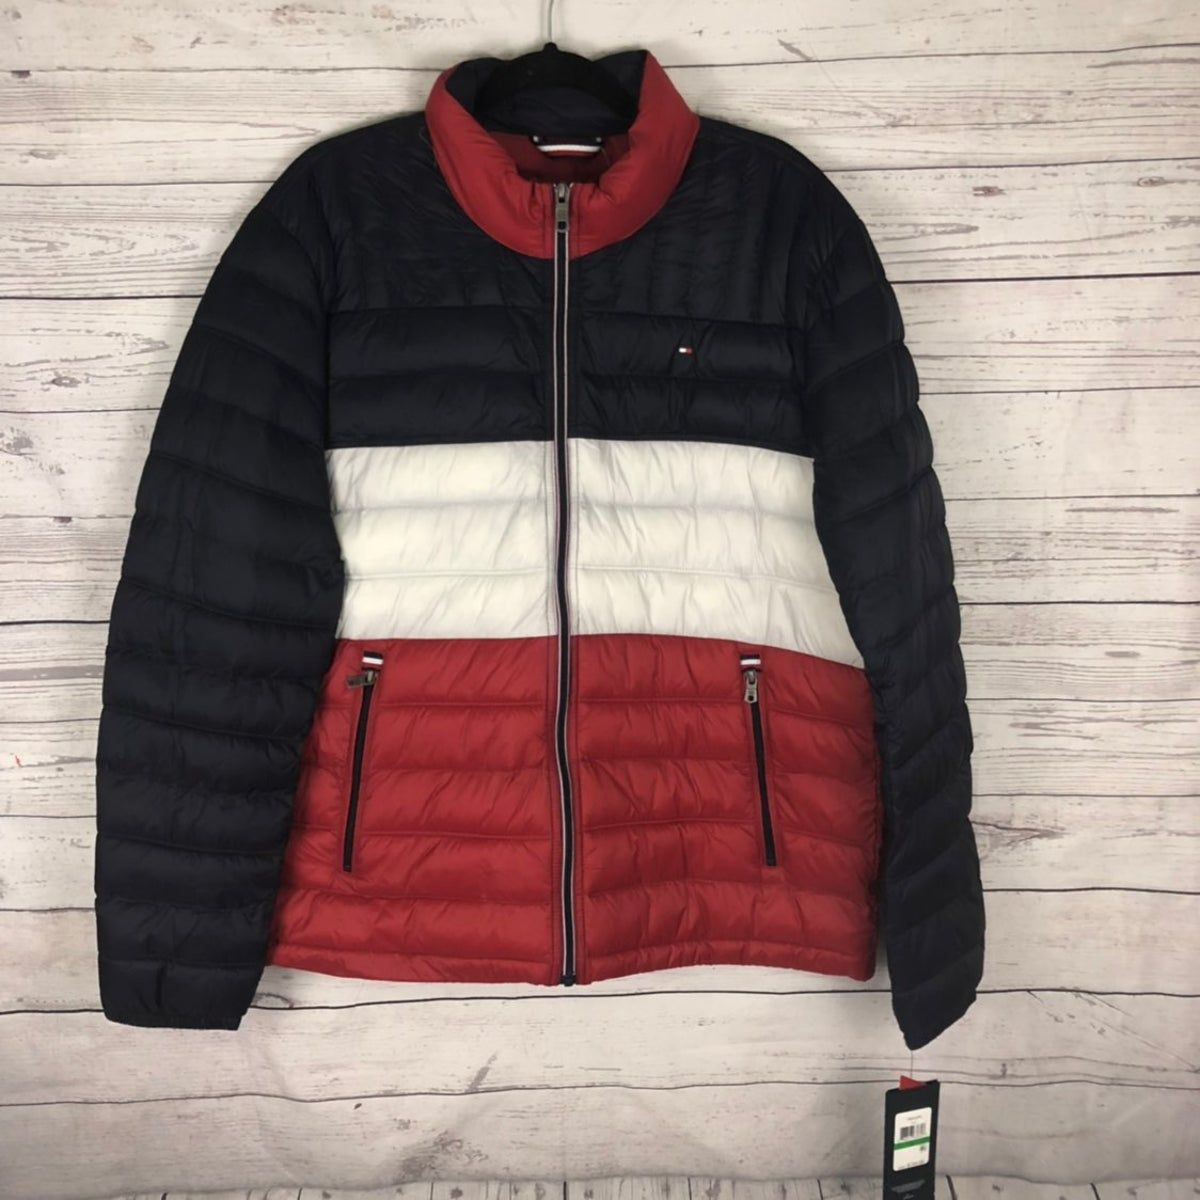 Tommy Hilfiger Packable Xl Jacket Nwt Men S Coats And Jackets Red Jacket Jackets [ 1200 x 1200 Pixel ]